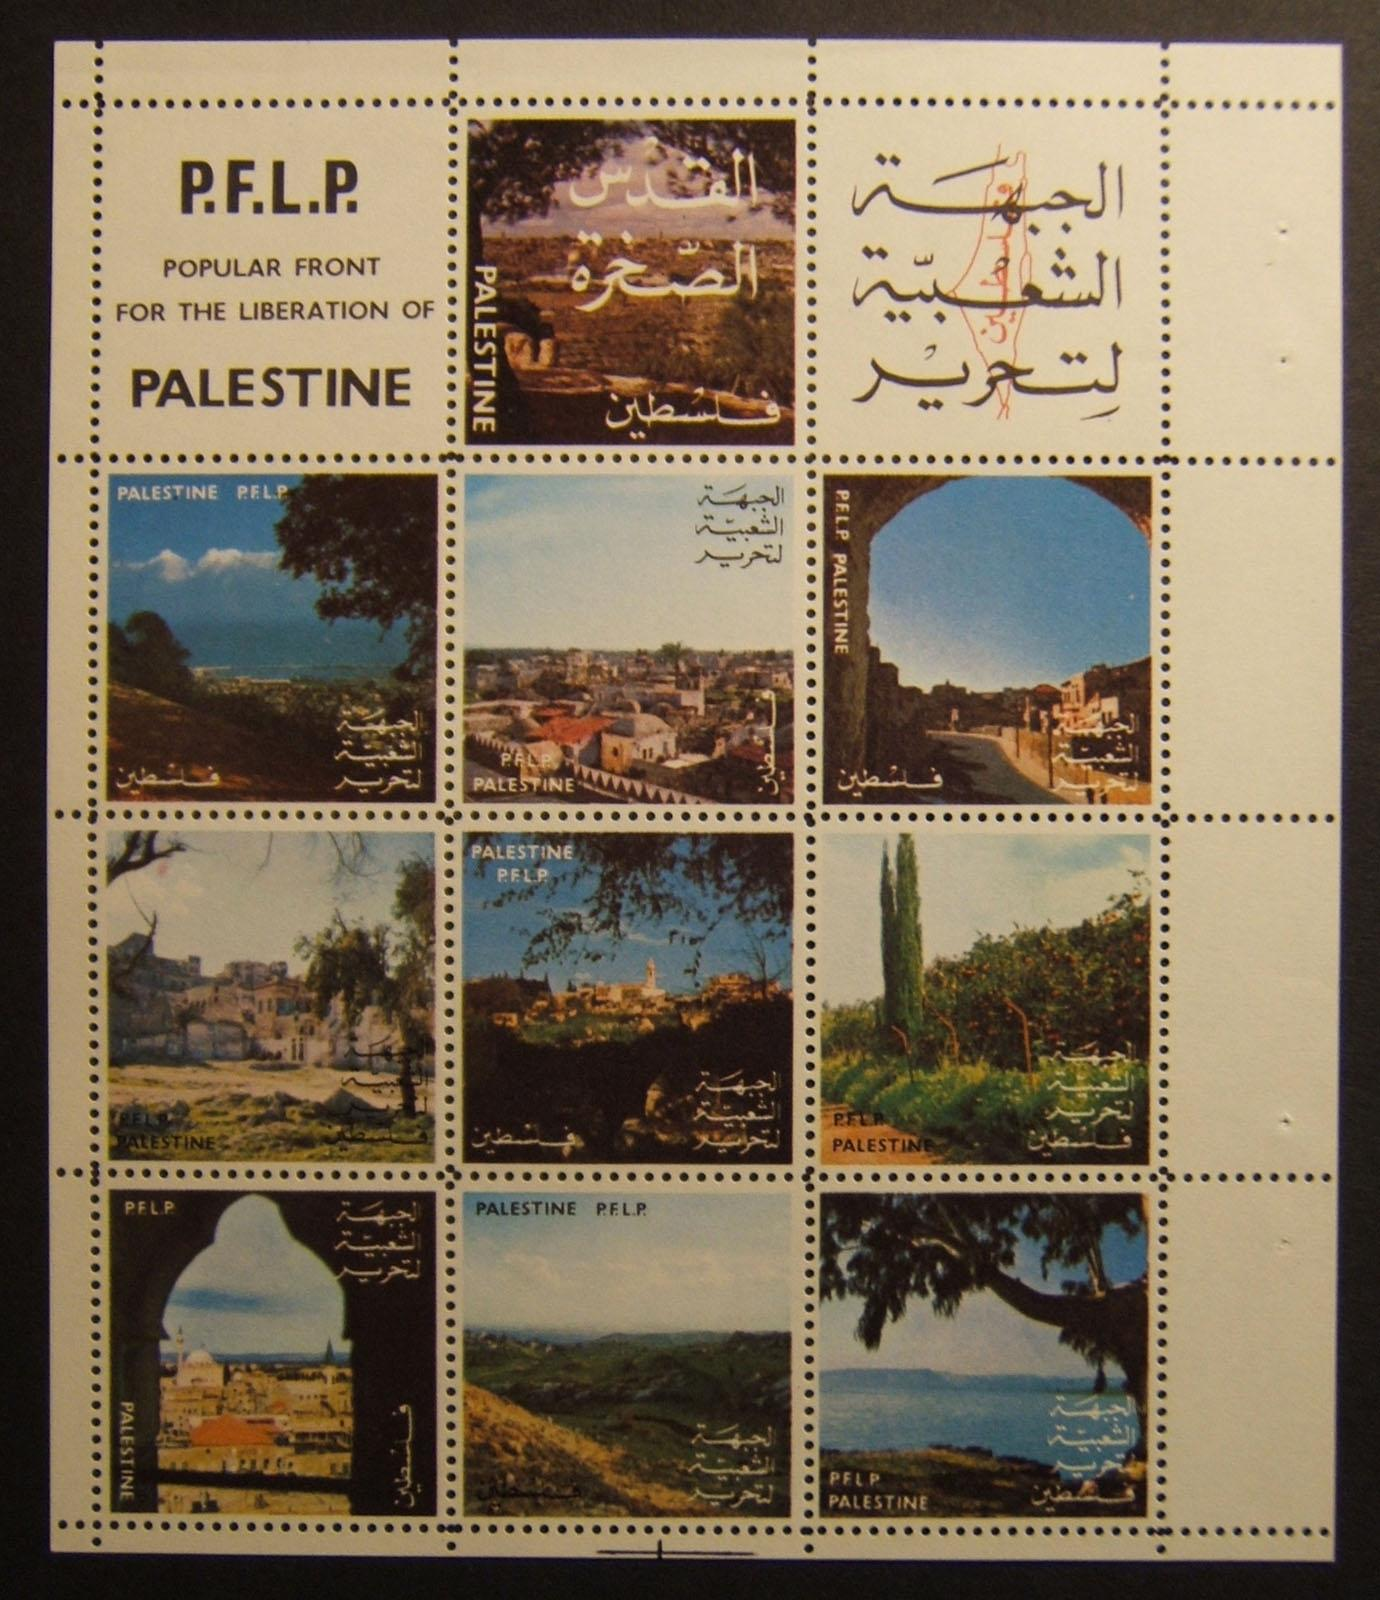 Jordan(?) - stamp sheet of Dr. George Habash's